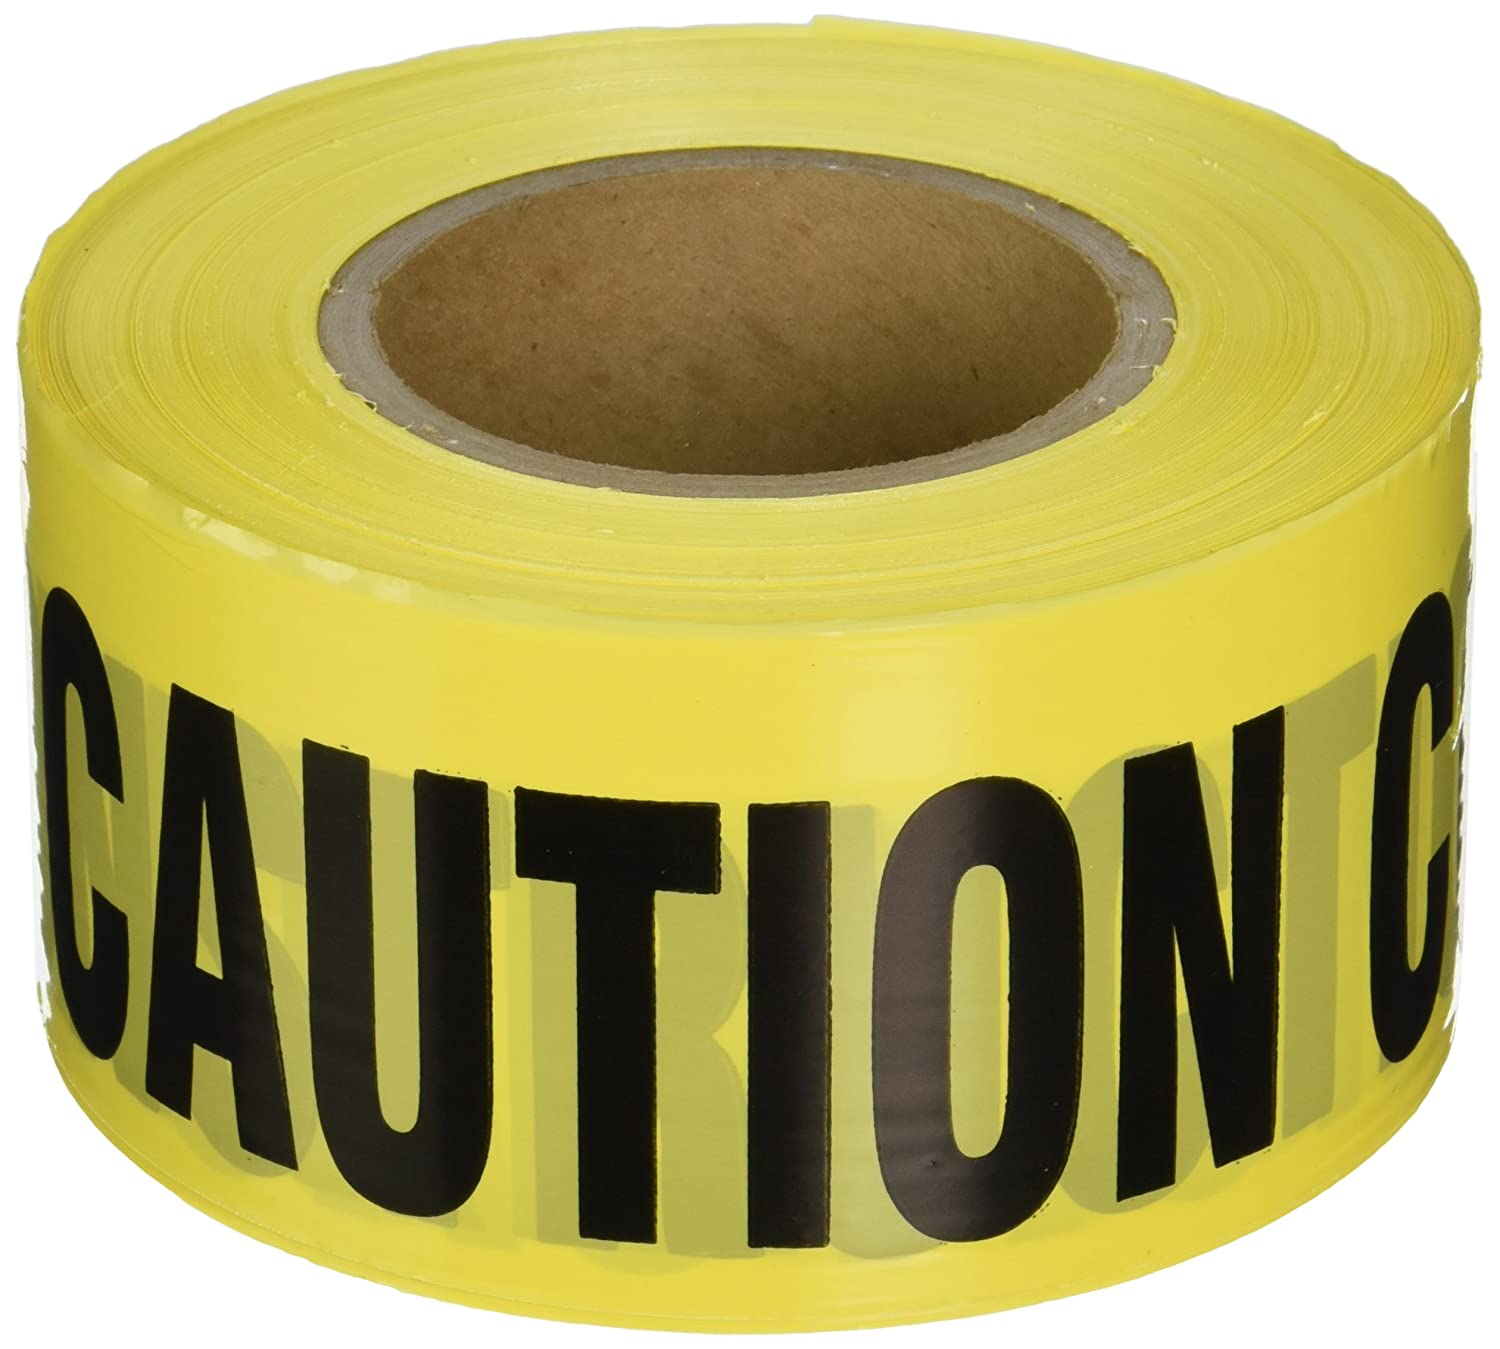 IRWIN Tools STRAIT-LINE 66211 Barrier Tape Roll, CAUTION - CONSTRUCTION, 3-inch by 1000-foot (66211)